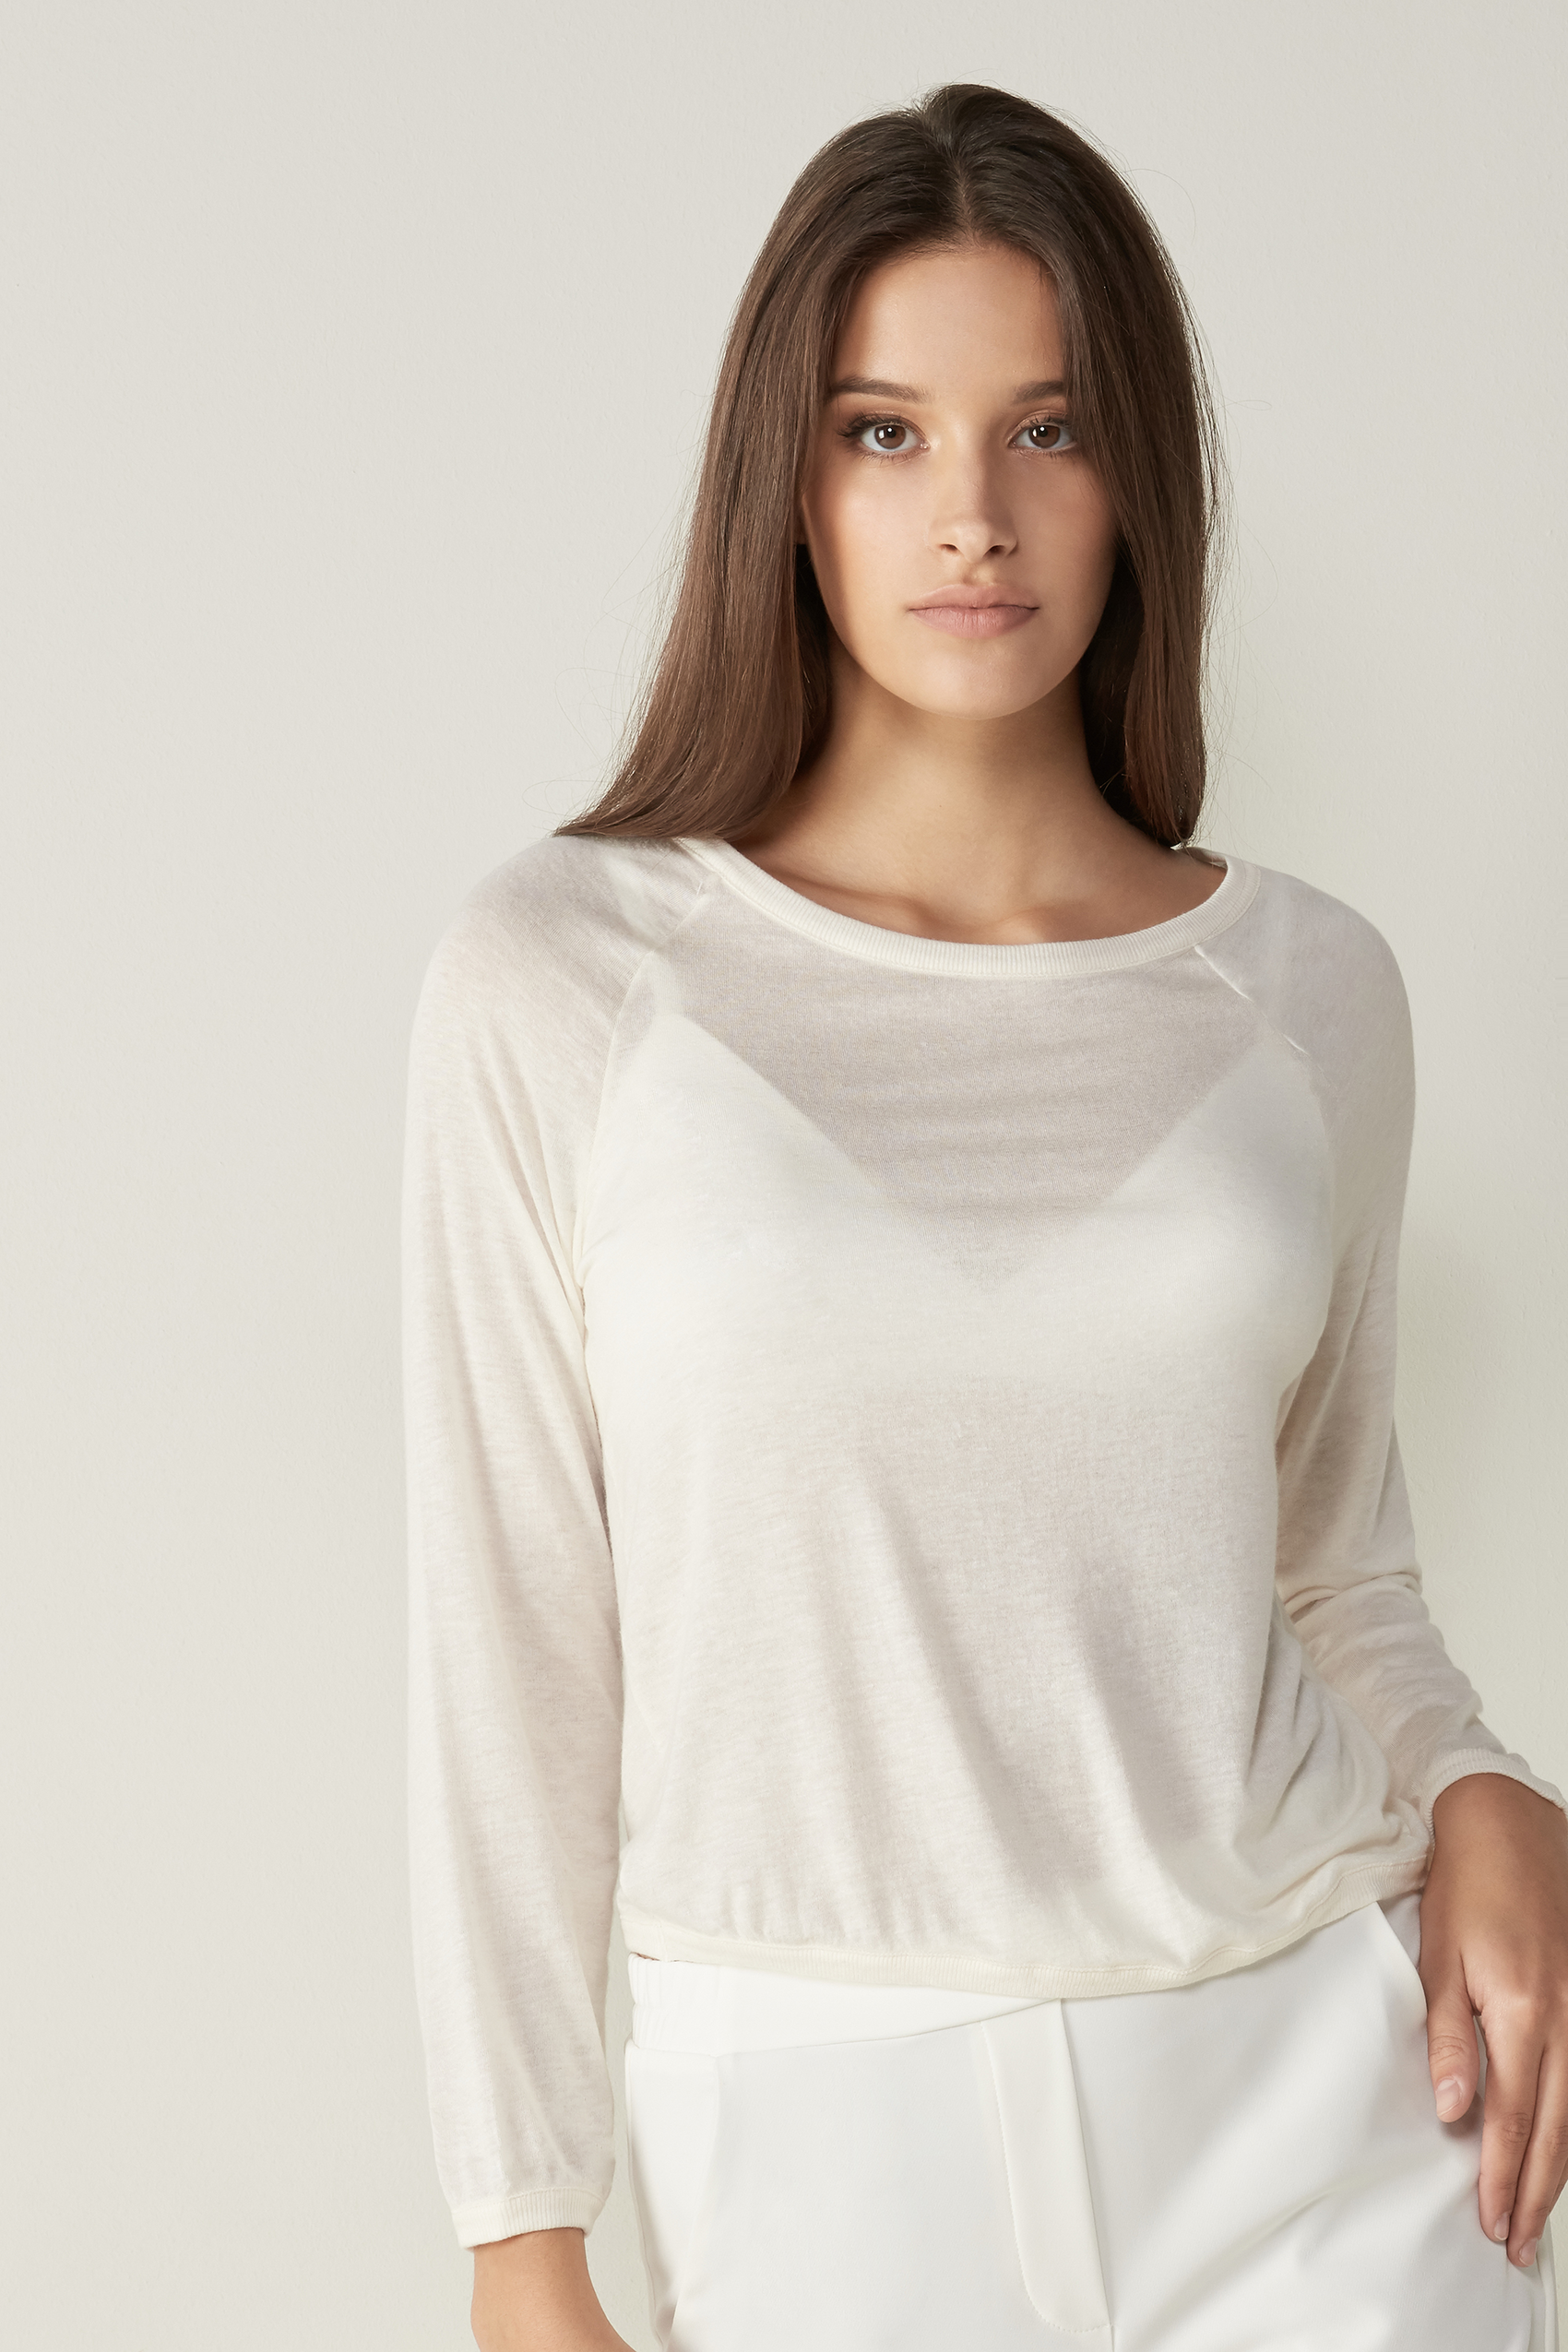 Intimissimi Womens Modal Cashmere Ultralight Wide-Shoulder Top